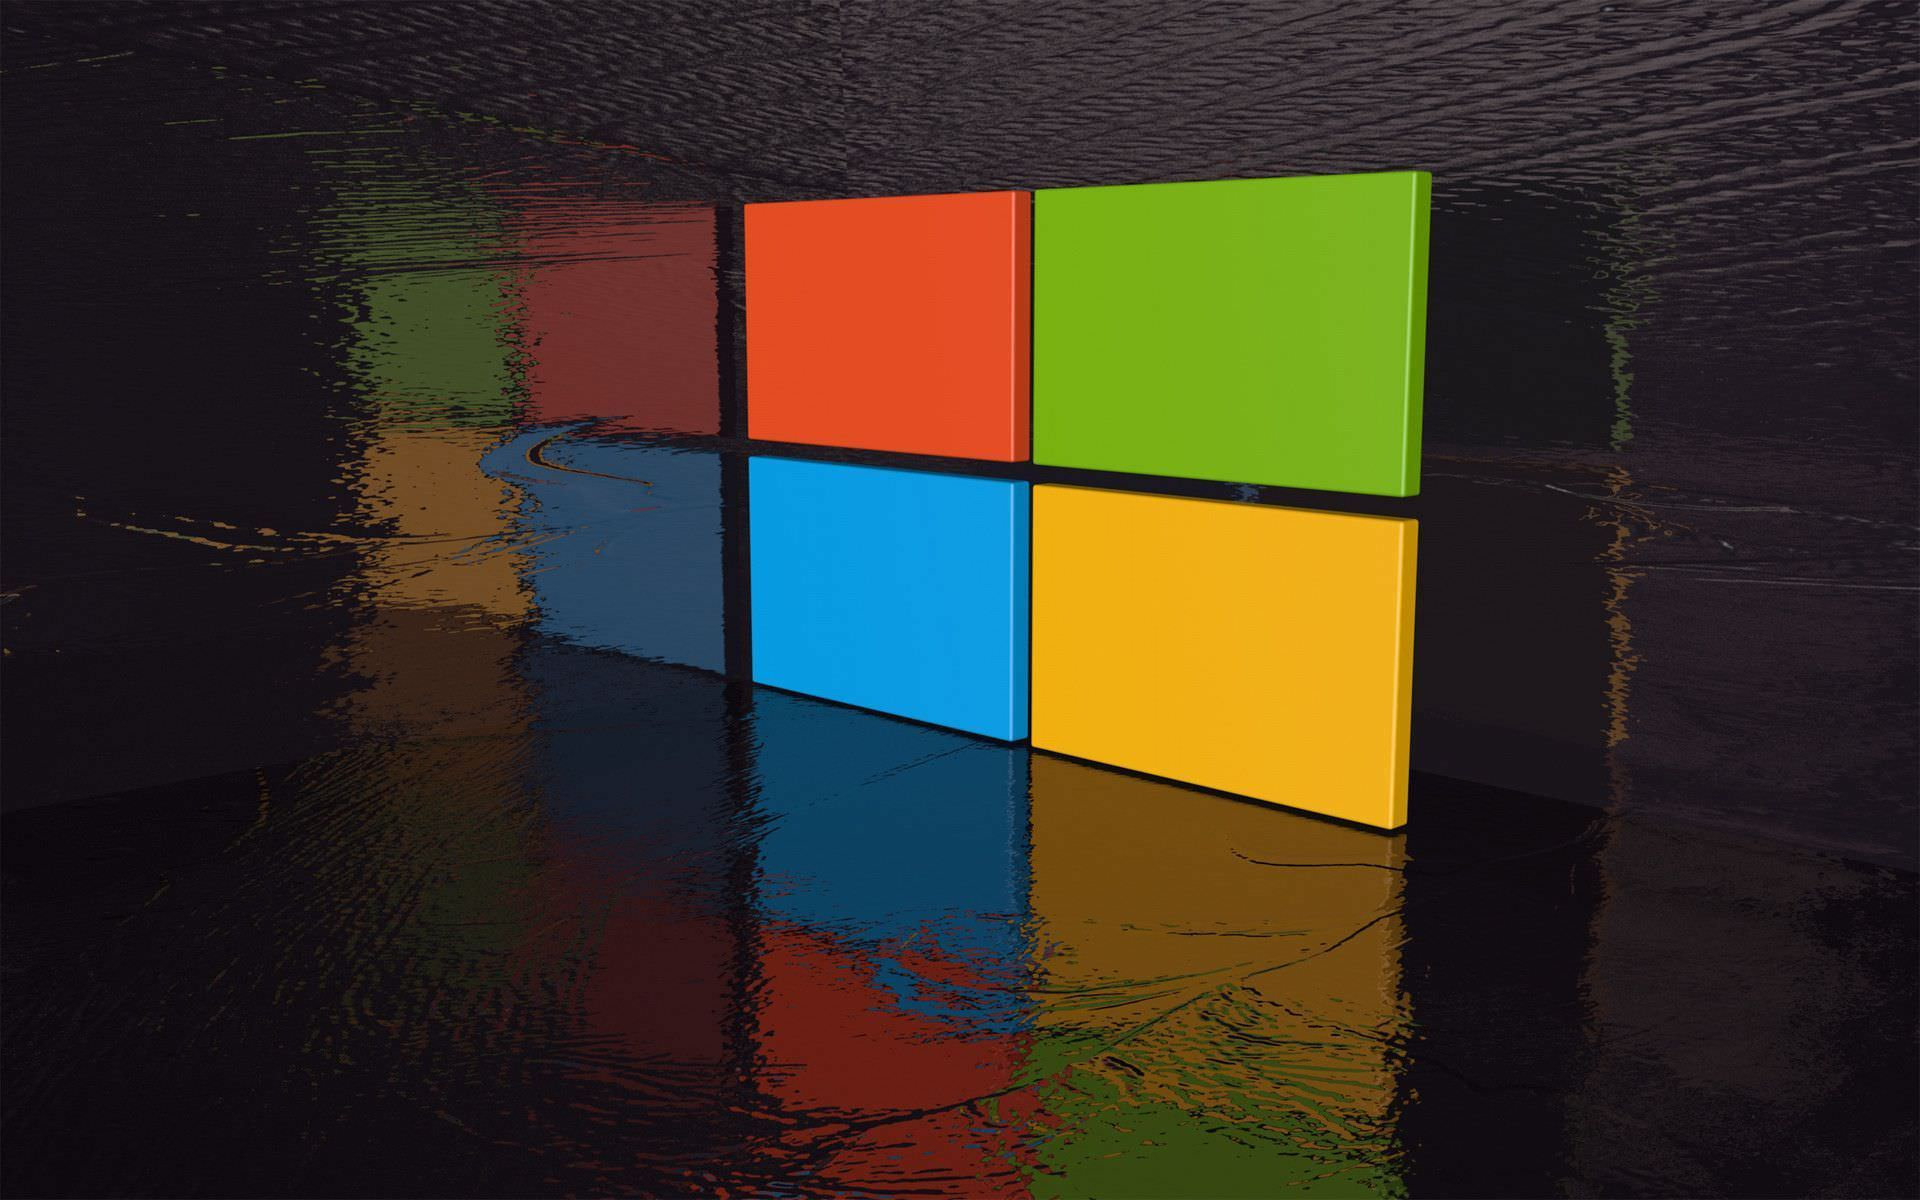 30+ 3d windows 8 wallpapers, images, backgrounds, pictures | design